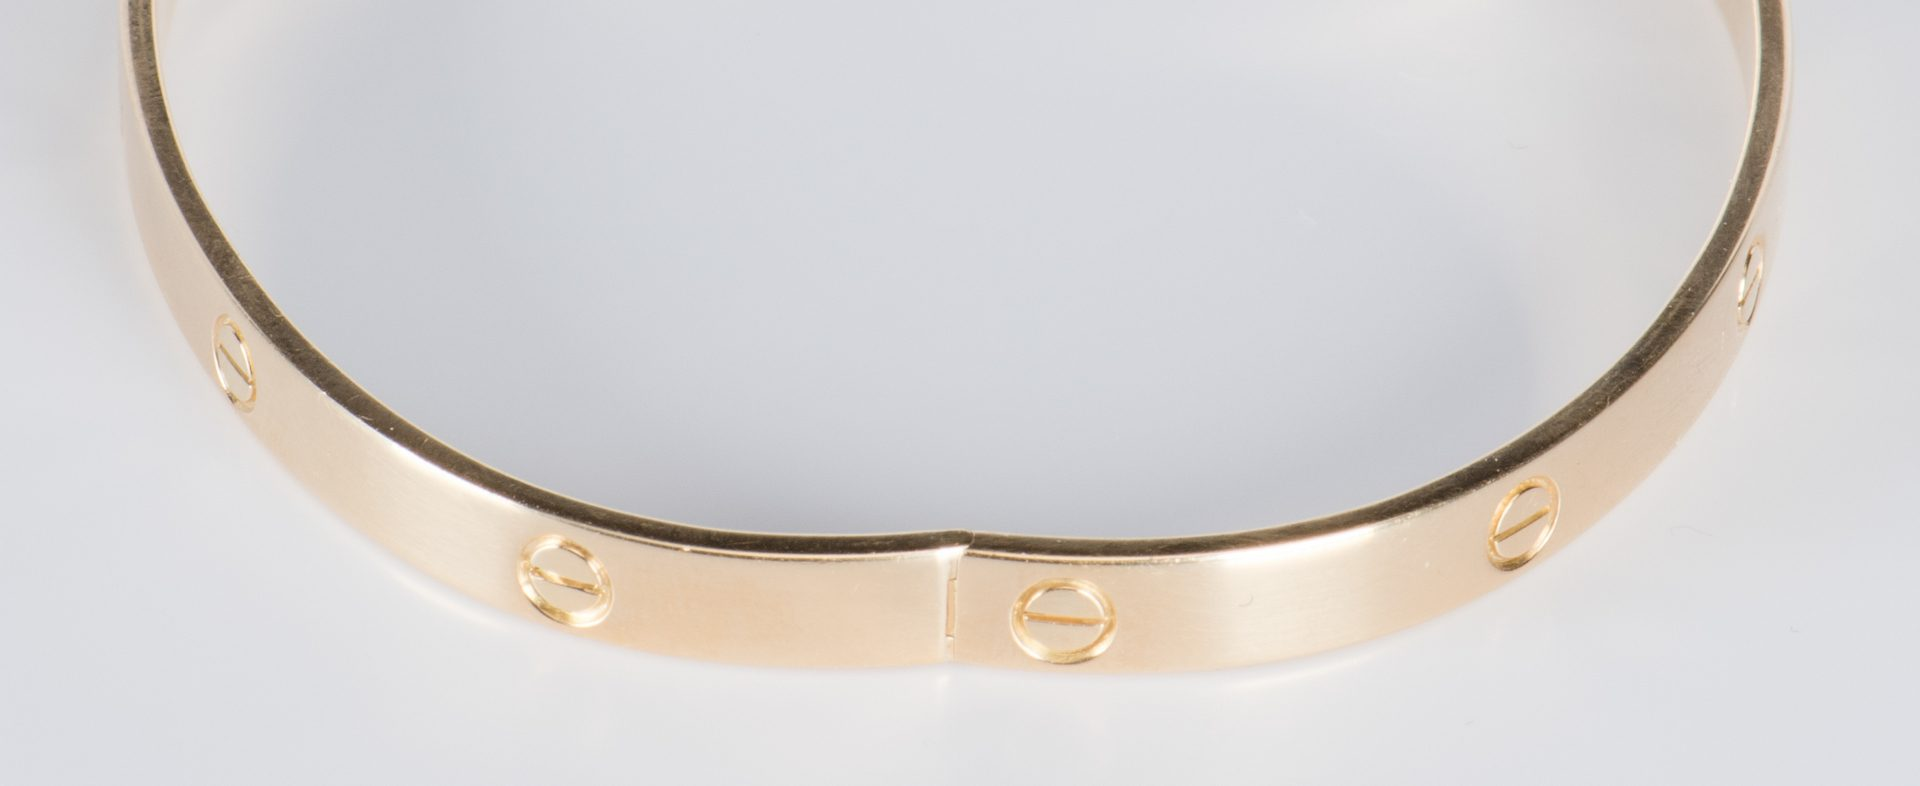 hope shop dream bangle hollow gold out cut in love letters paris words styled bangles